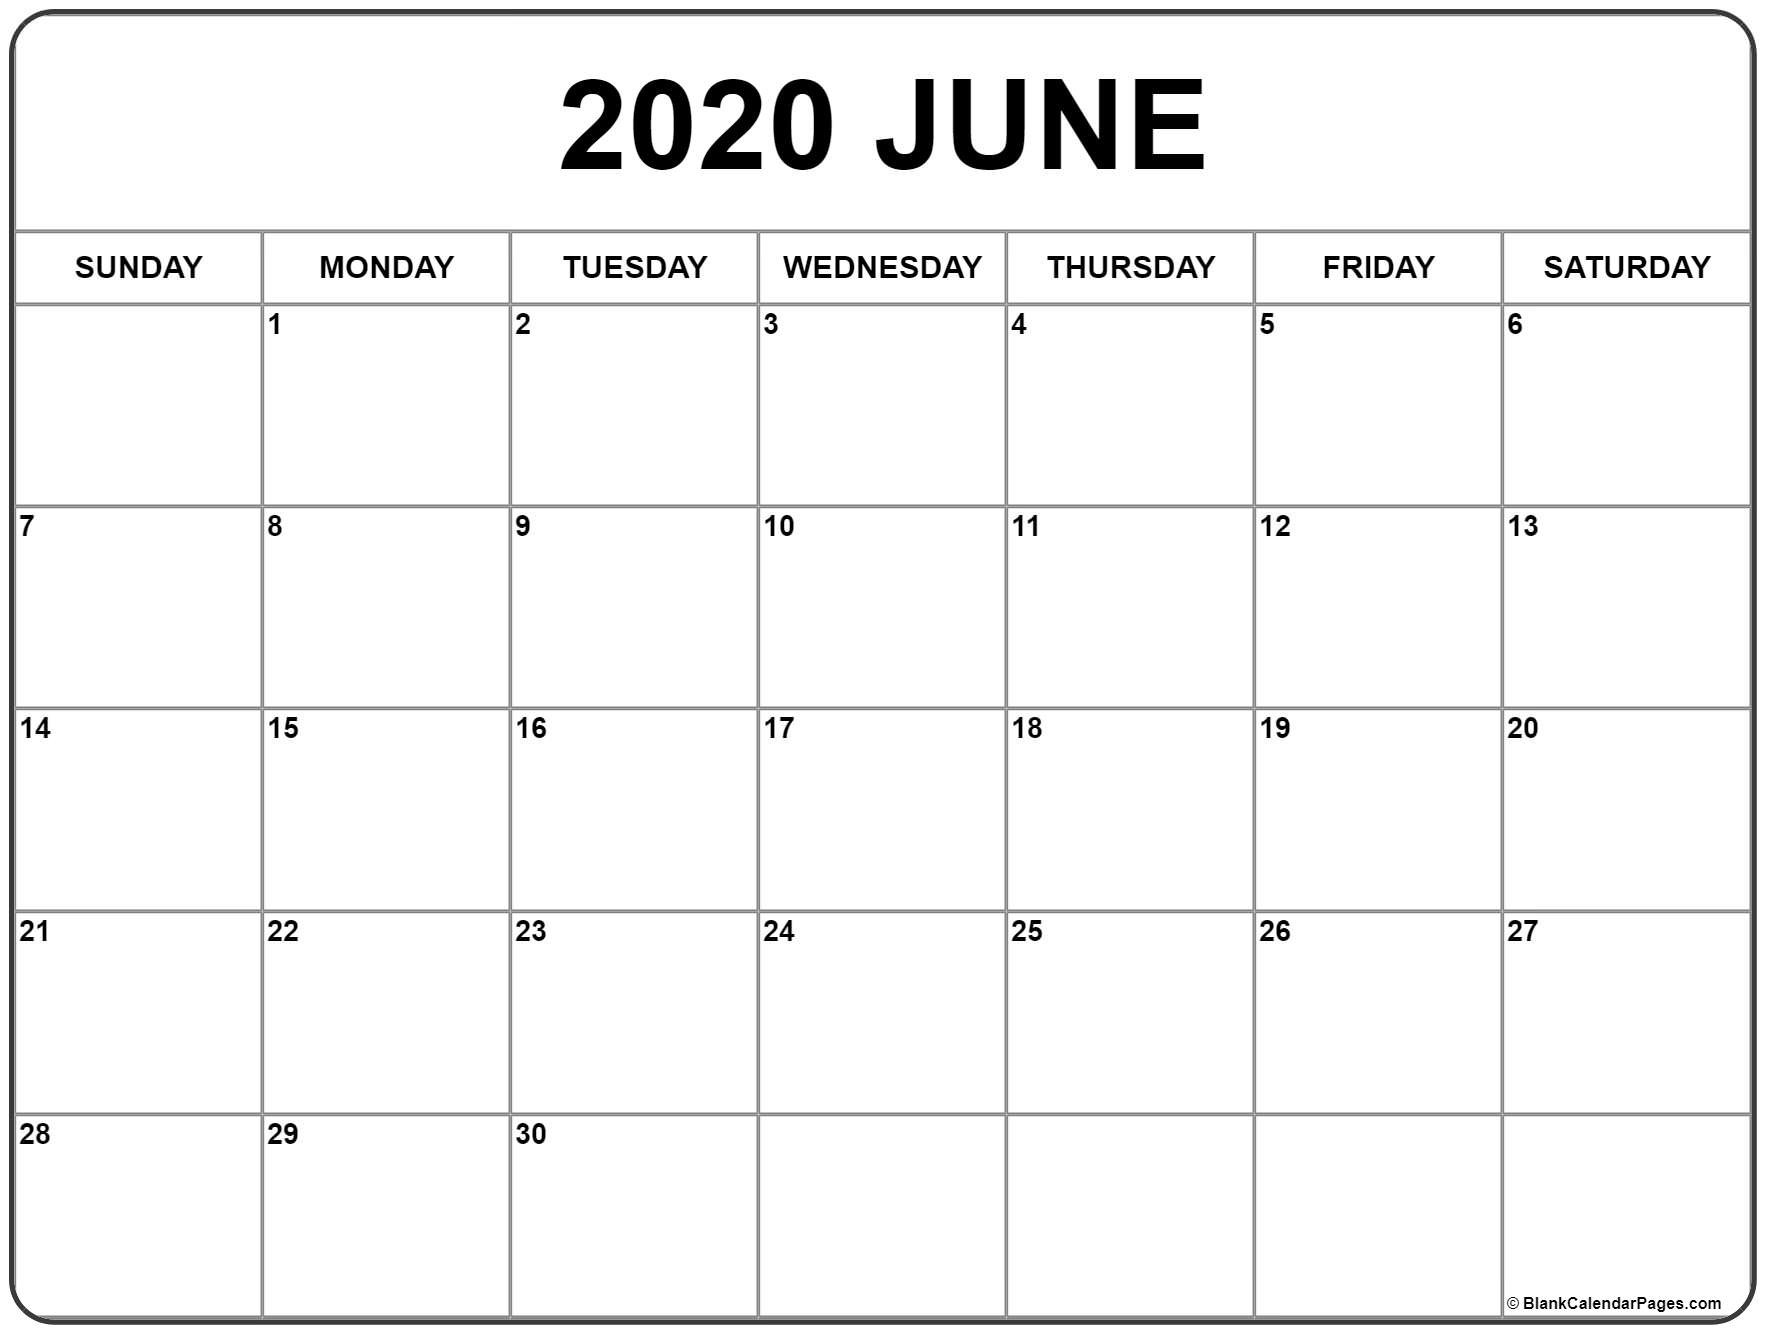 June 2020 Calendar | Free Printable Monthly Calendars in Calendars To Print Free With Space To Write